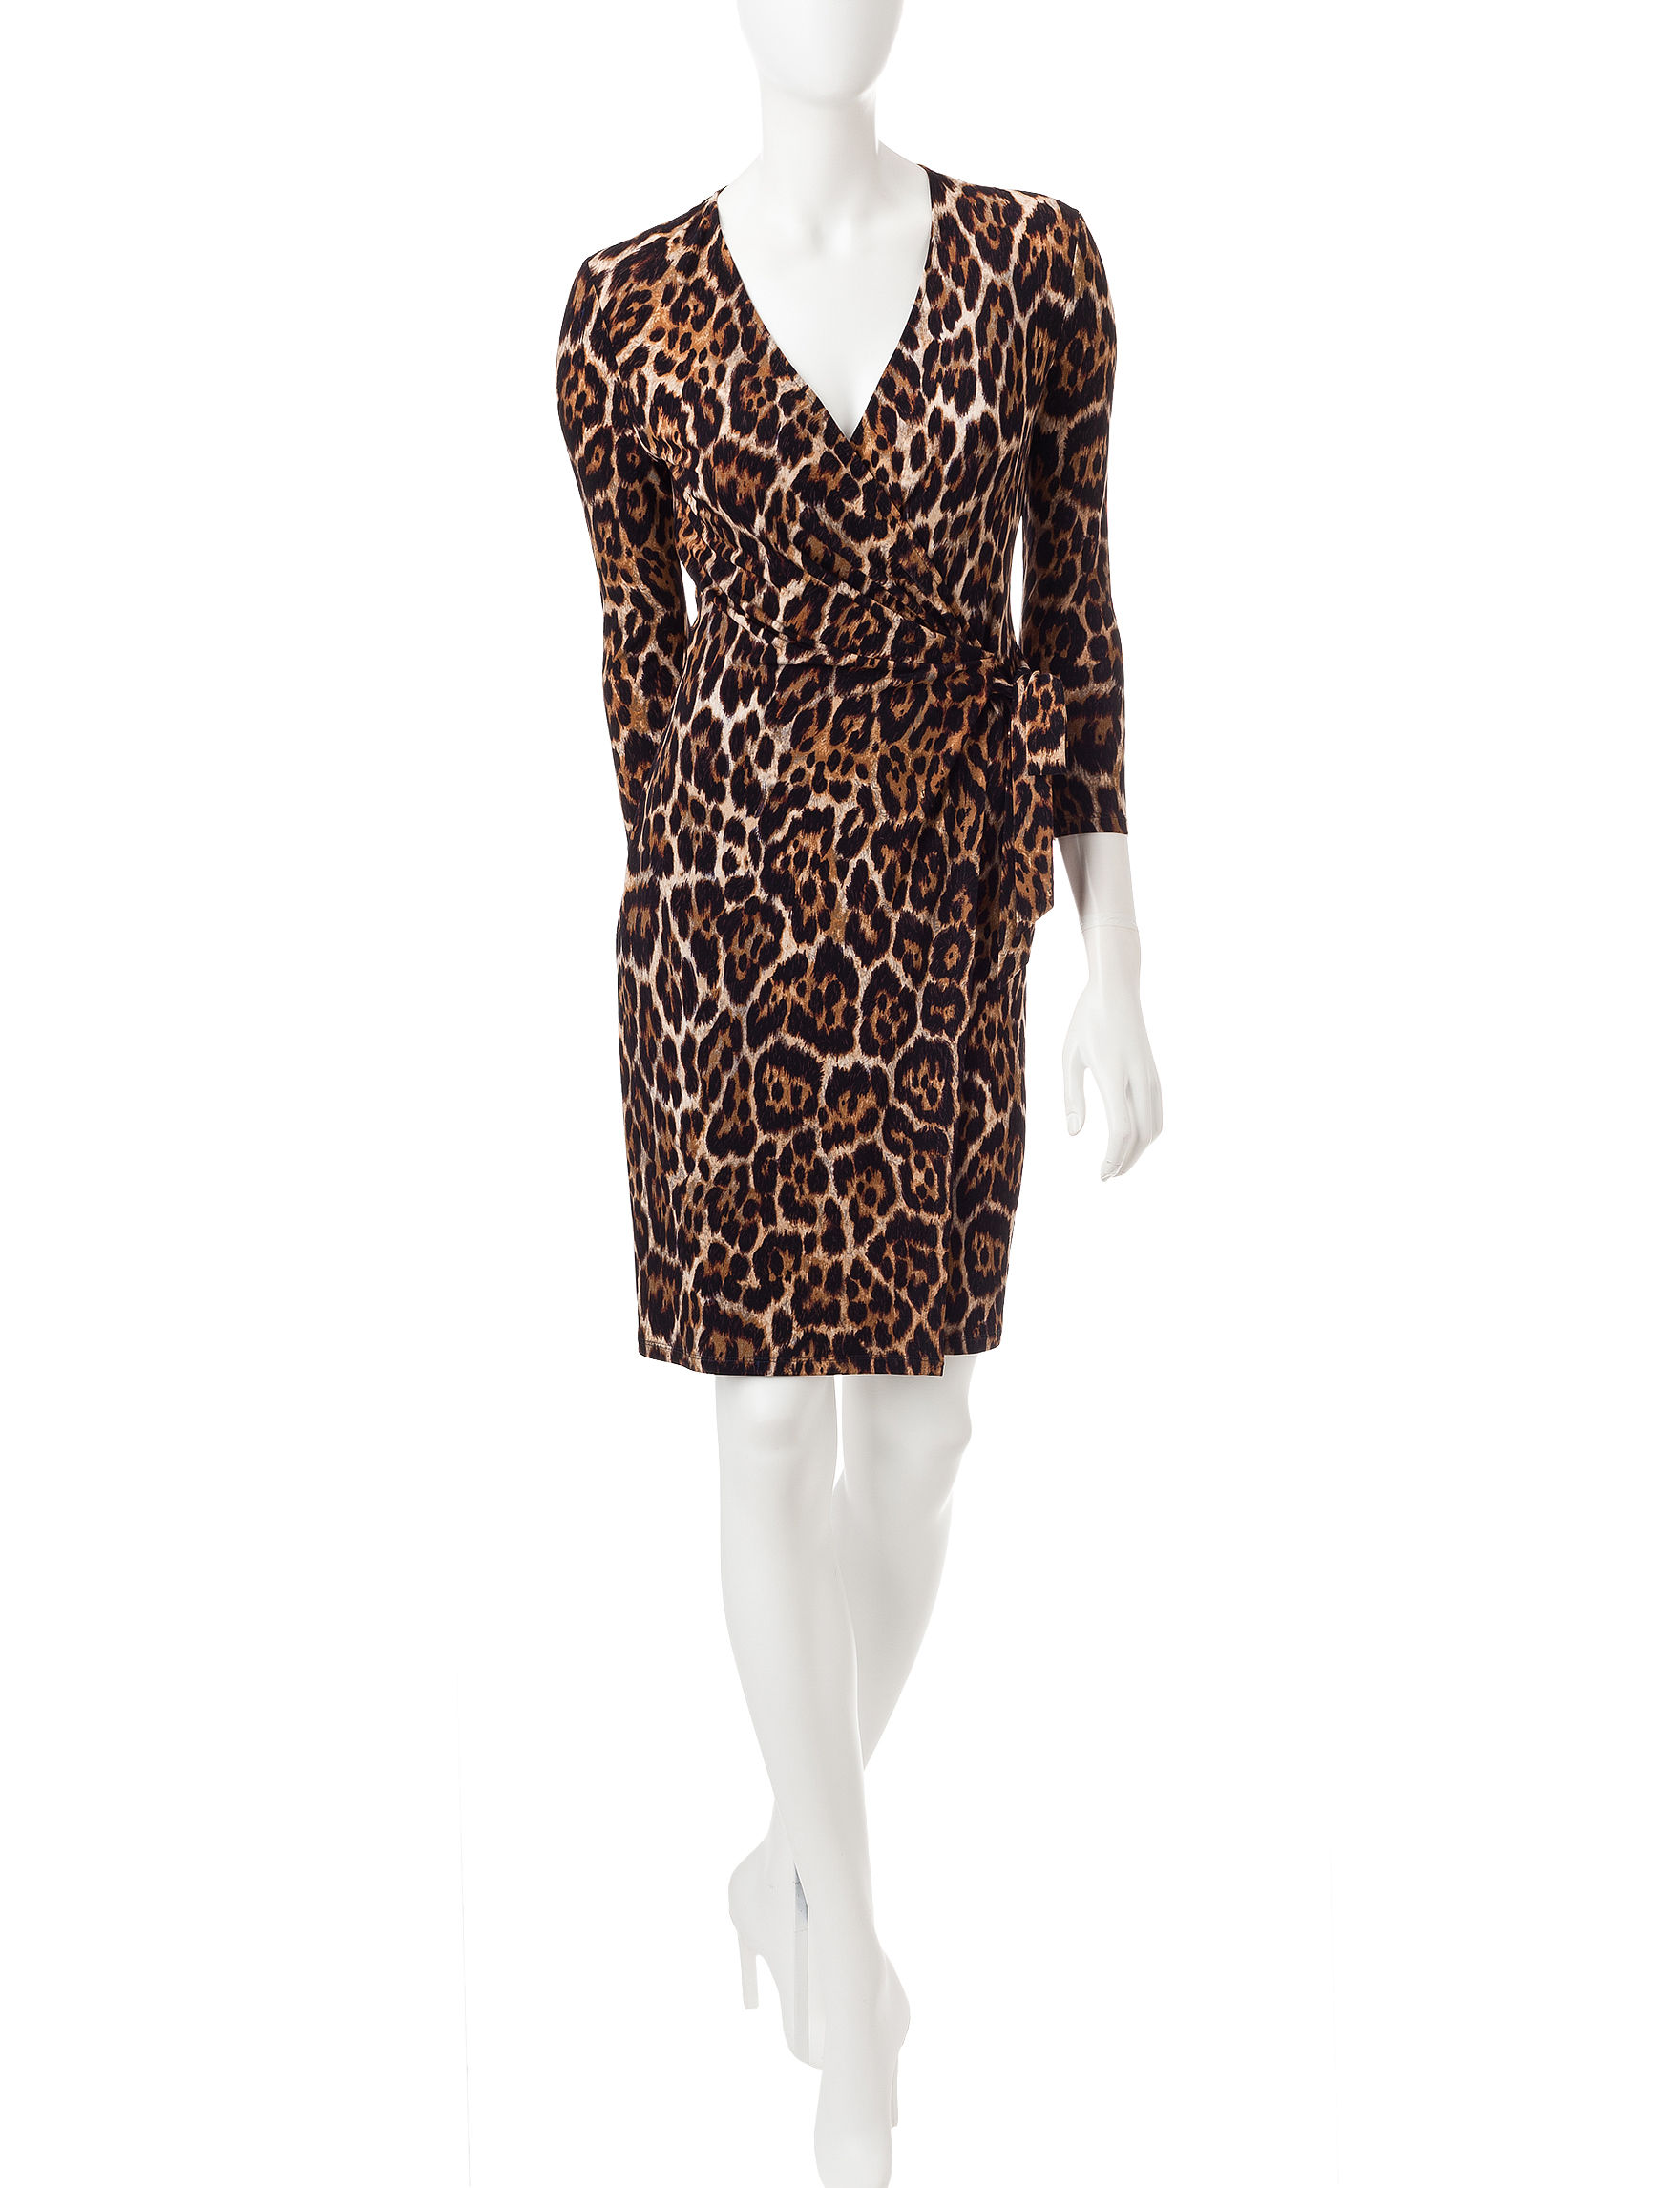 Anne Klein Beige Everyday & Casual Fit & Flare Dresses